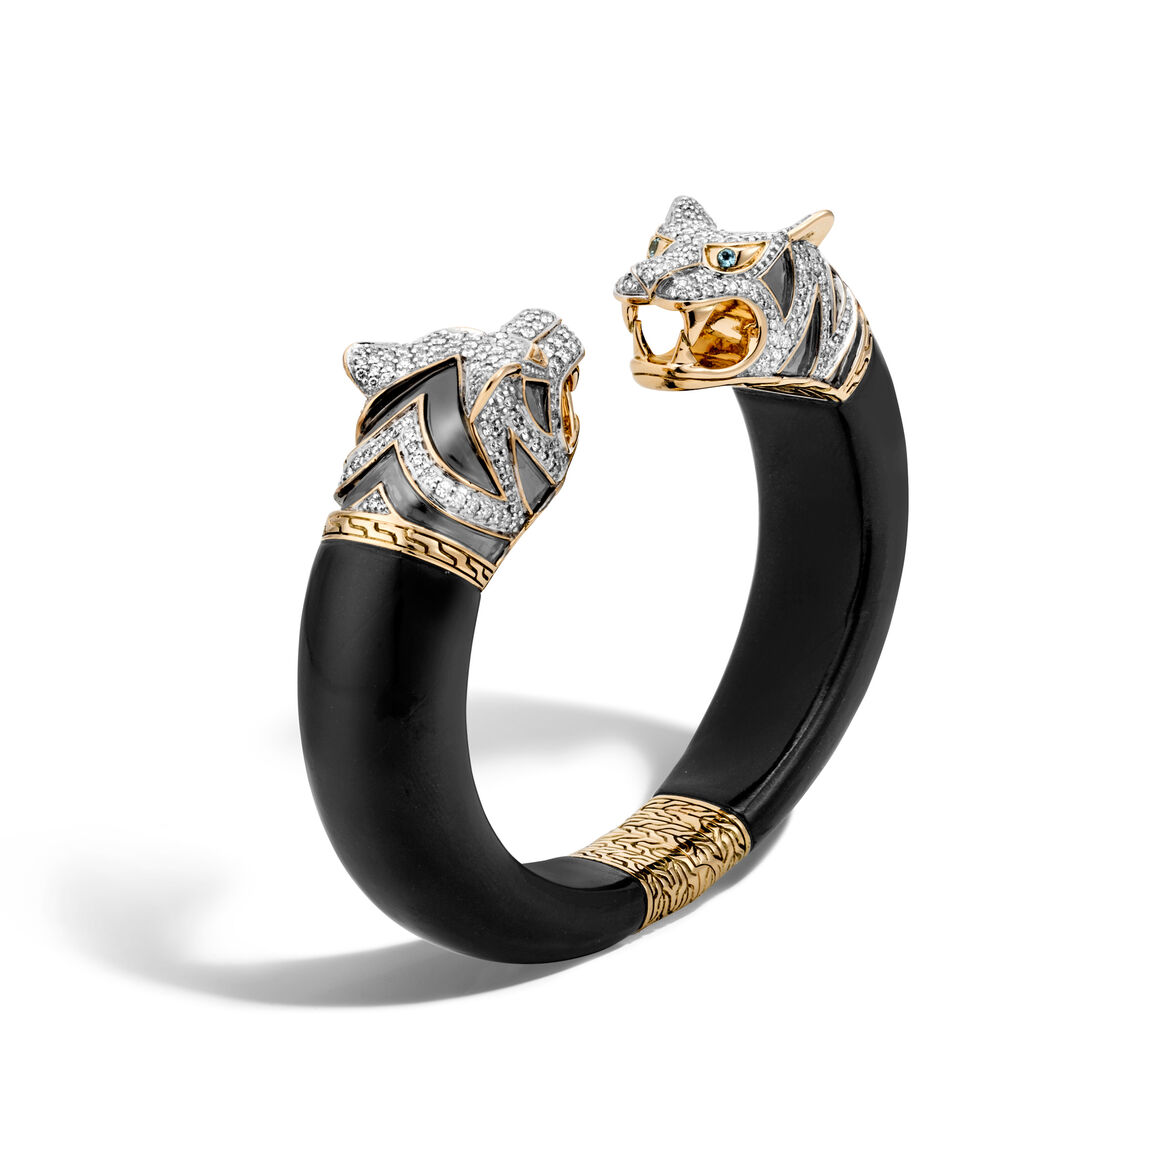 Legends Macan Double Head Kick Cuff, 18K, Gemstone, Diamonds